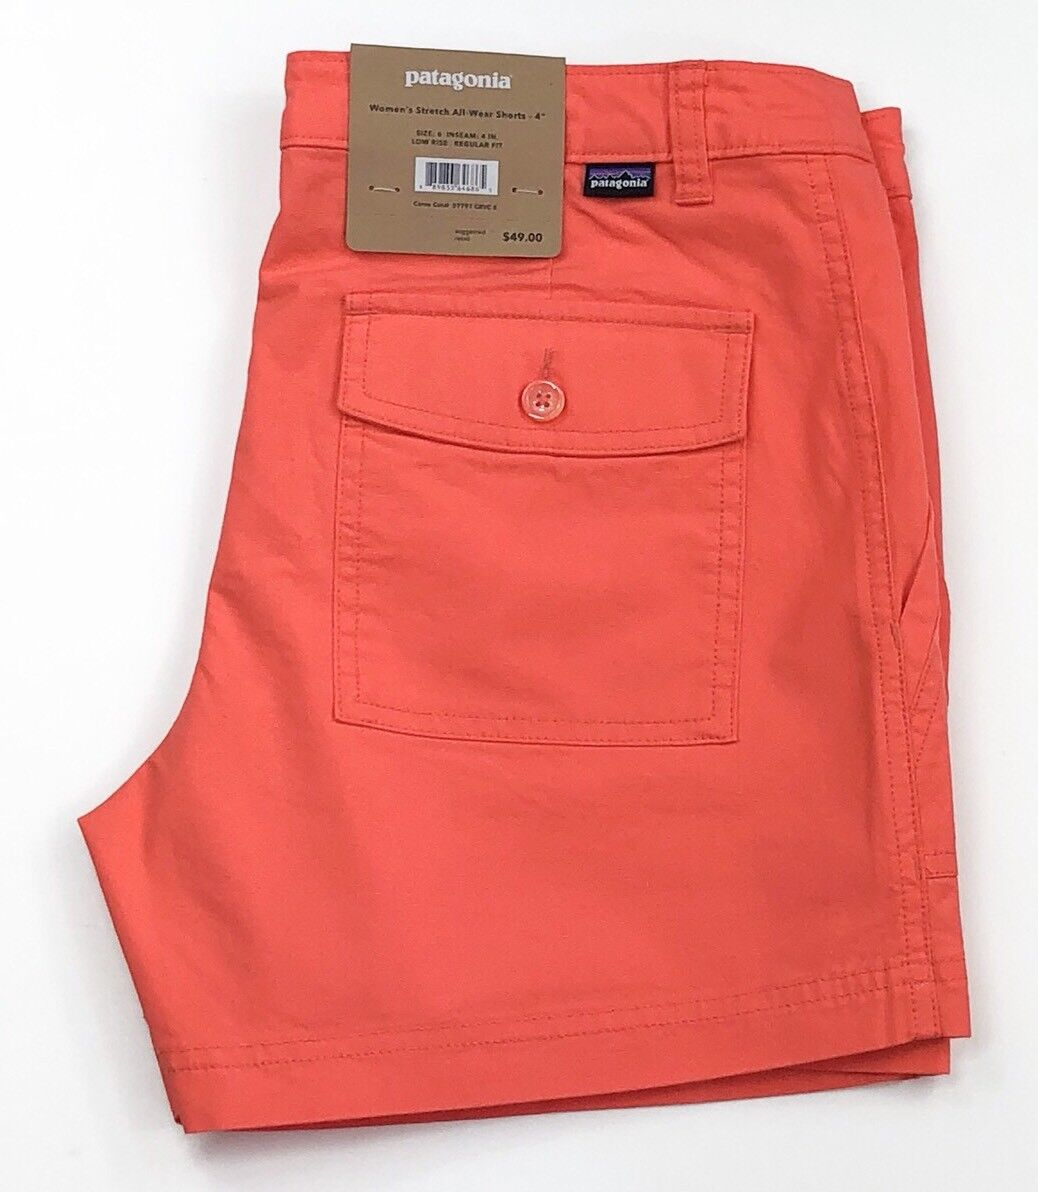 Patagonia Women's Stretch All-Wear Carve Coral Shorts-4""